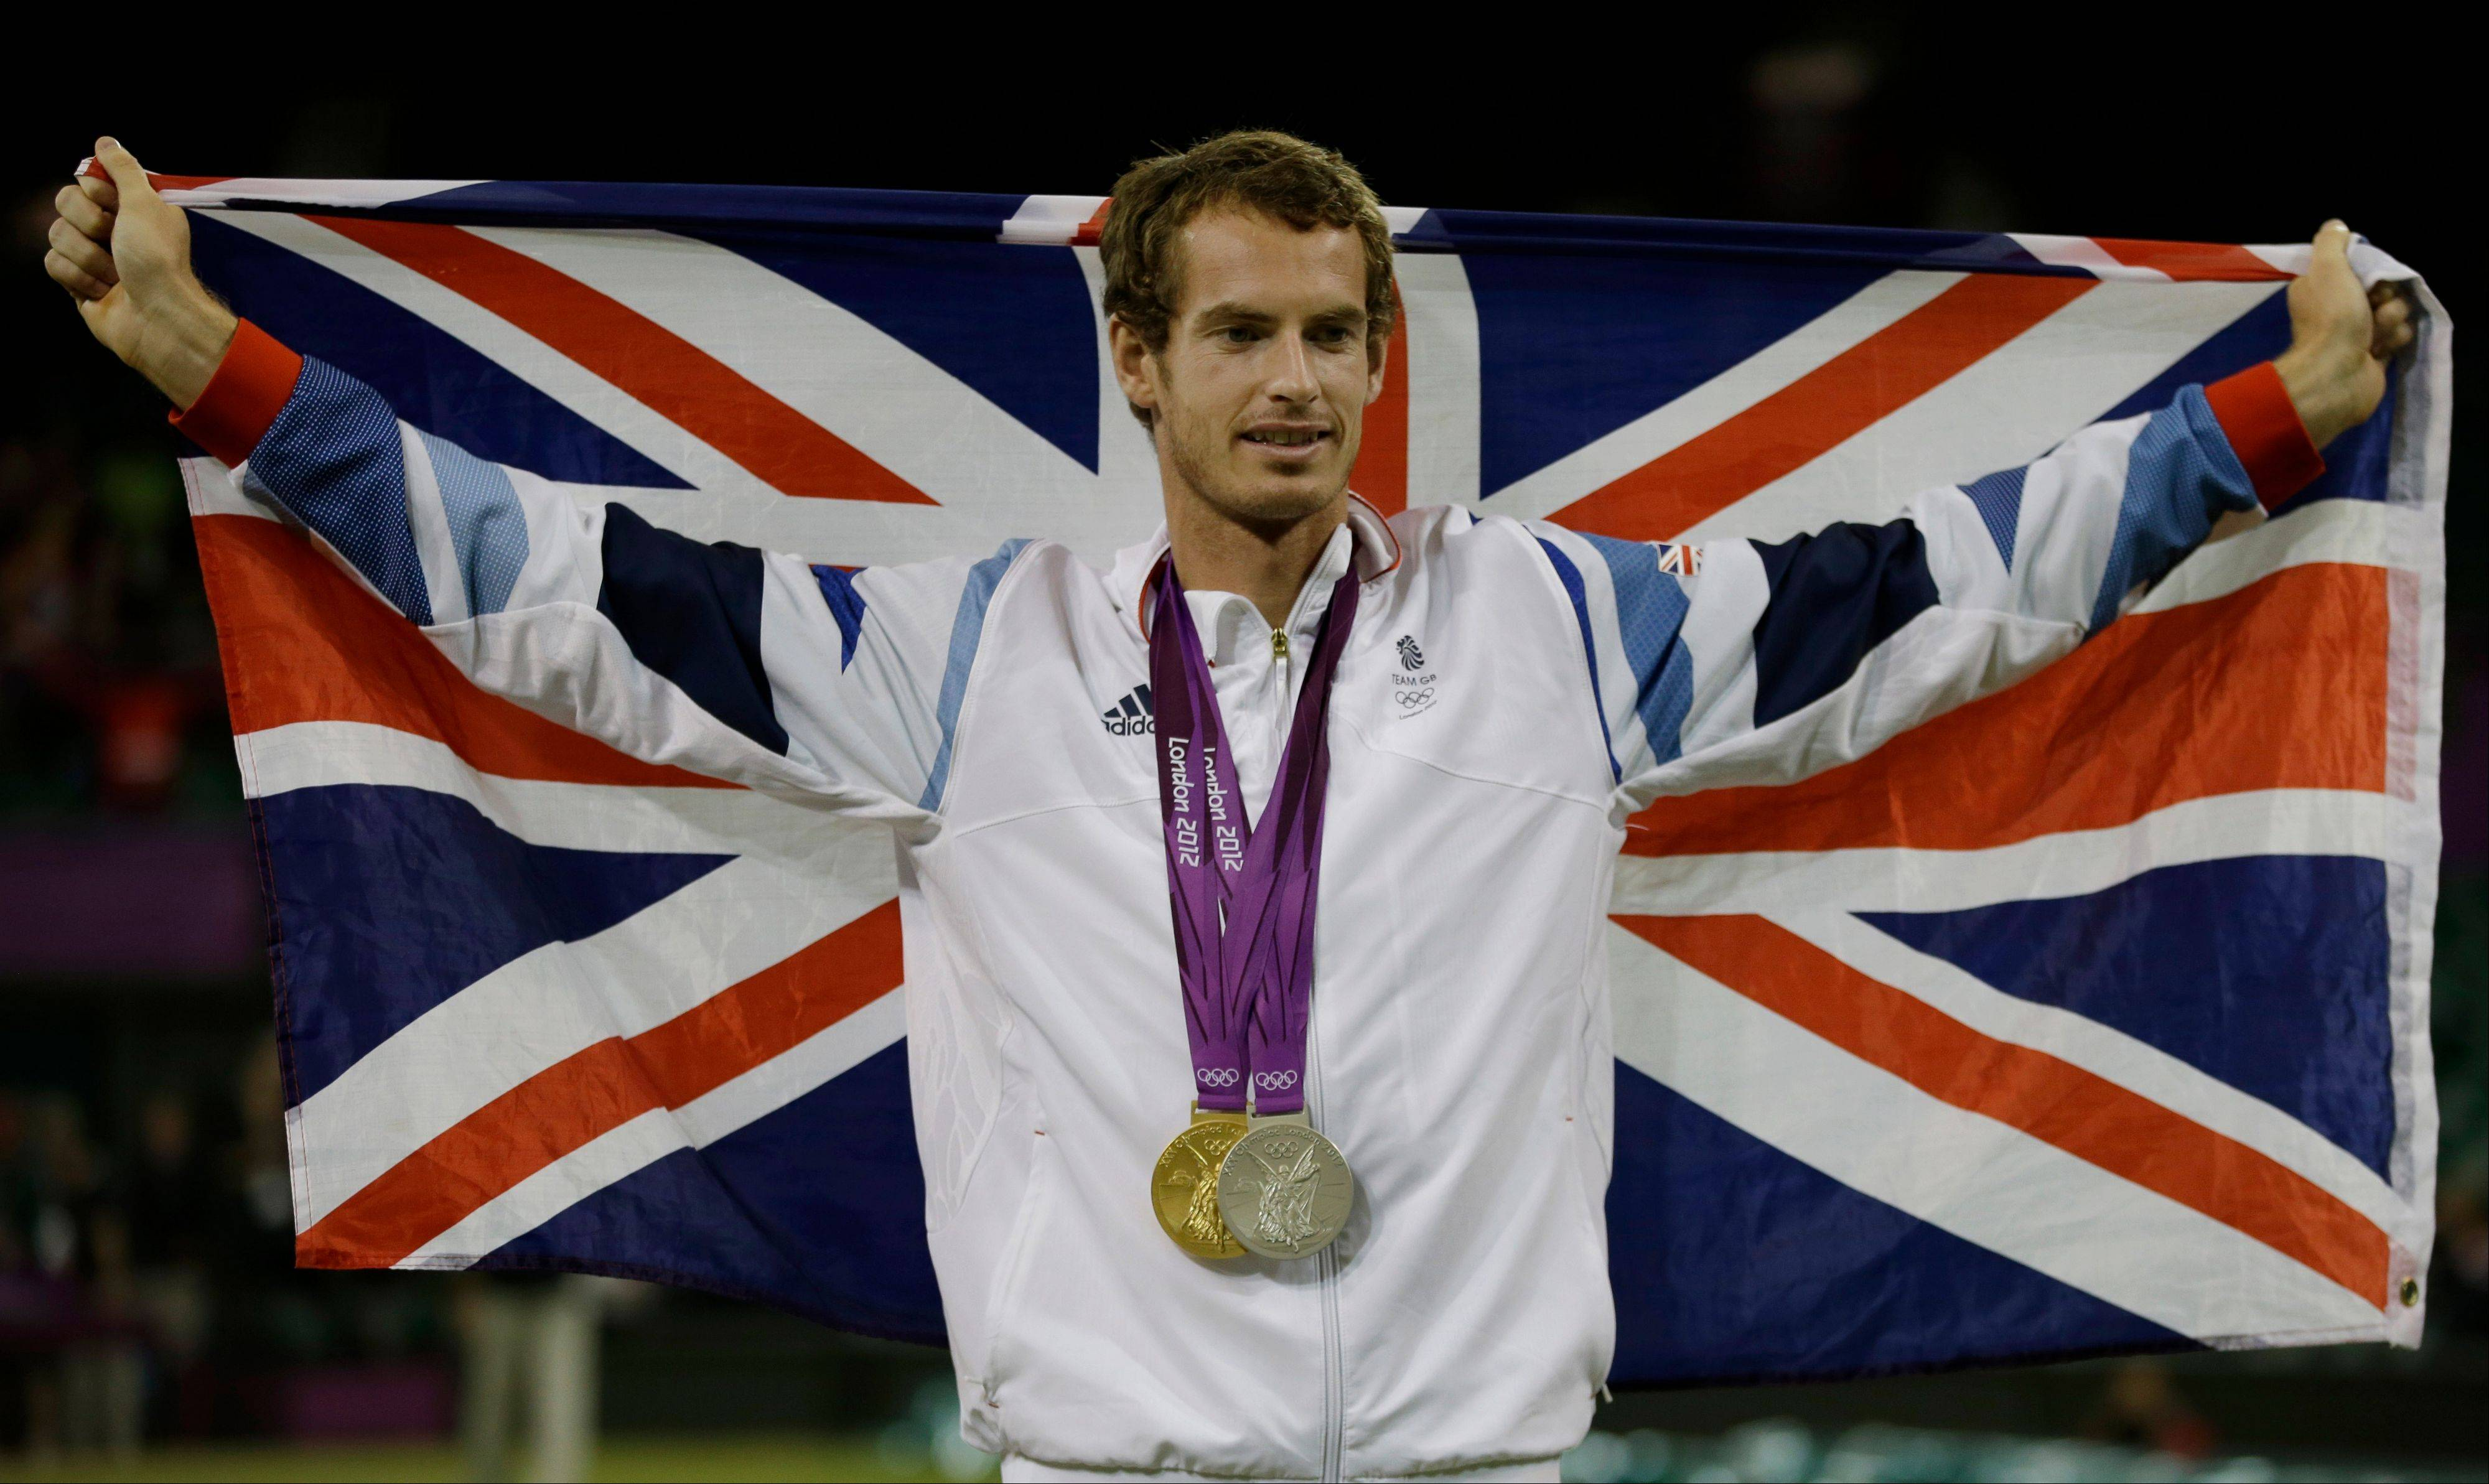 Andy Murray of Great Britain poses with his gold and silver medals Sunday at the All England Lawn Tennis Club in Wimbledon, London at the 2012 Summer Olympics.